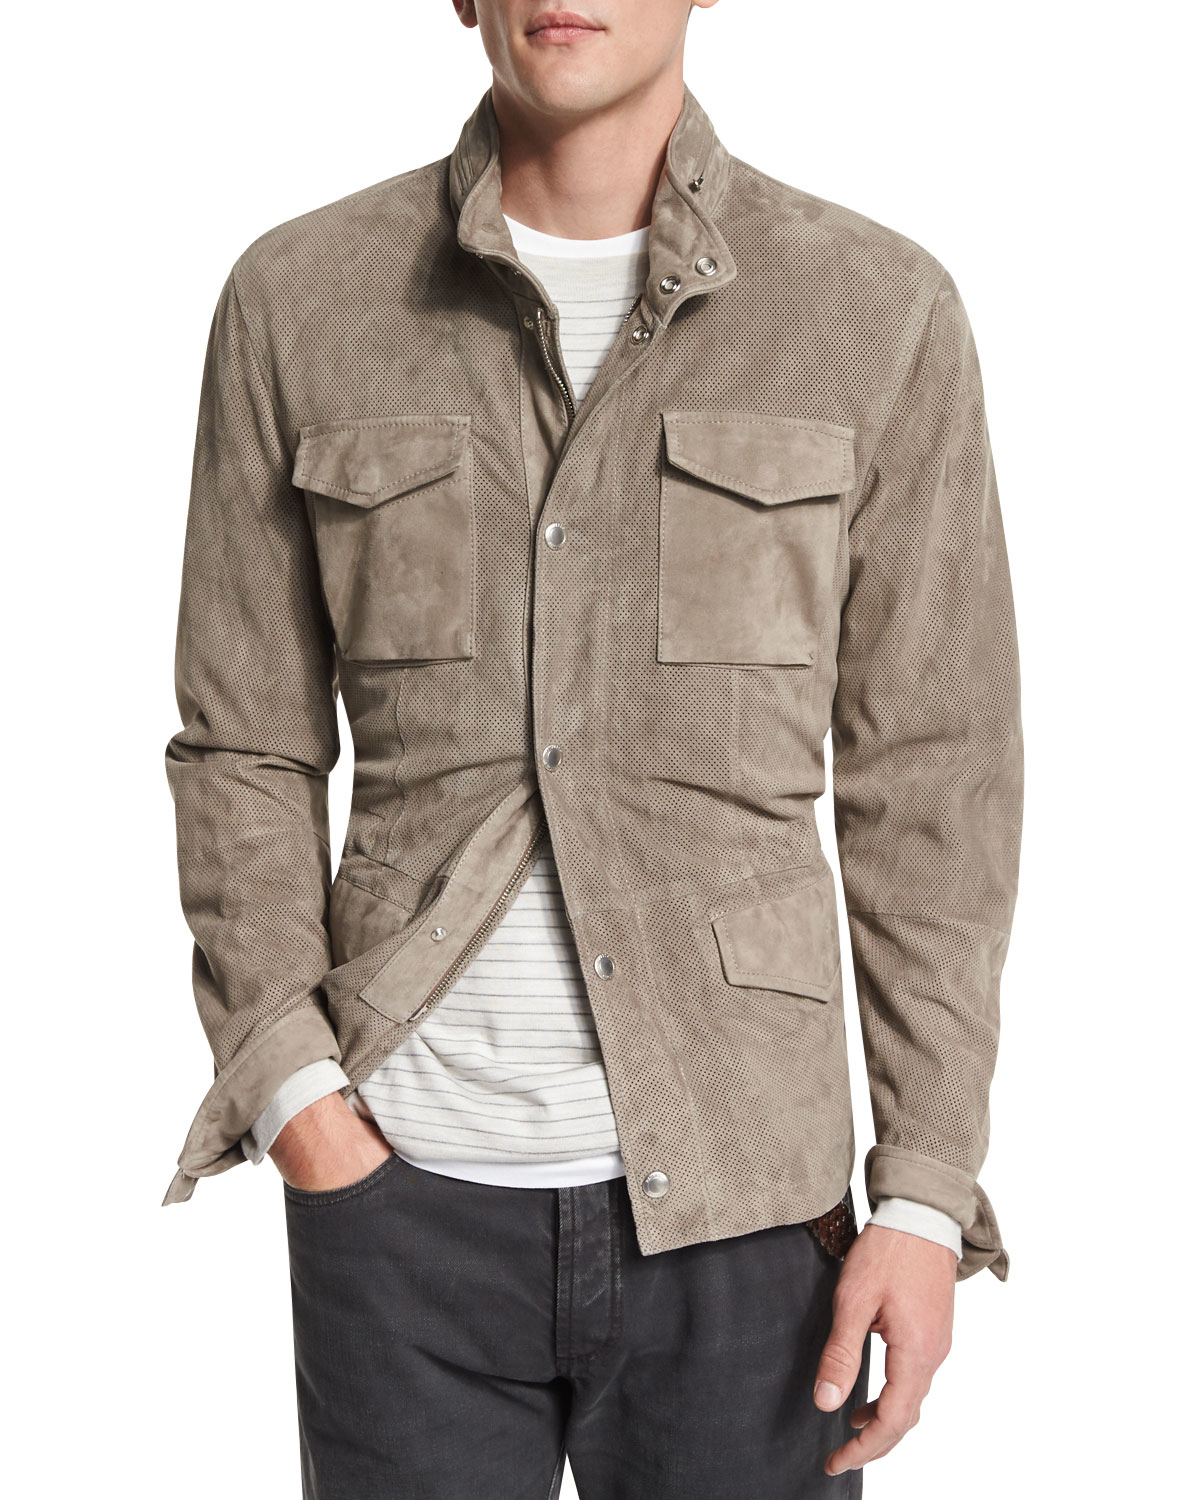 """The field jacket, and the clothes that go with it, are garments of unrivalled practicality and style. They work as well in the city as they do on the savanna. And over time the field jacket has become a sort of """"un-blazer"""", a favourite of those whose careers are creative or rugged."""